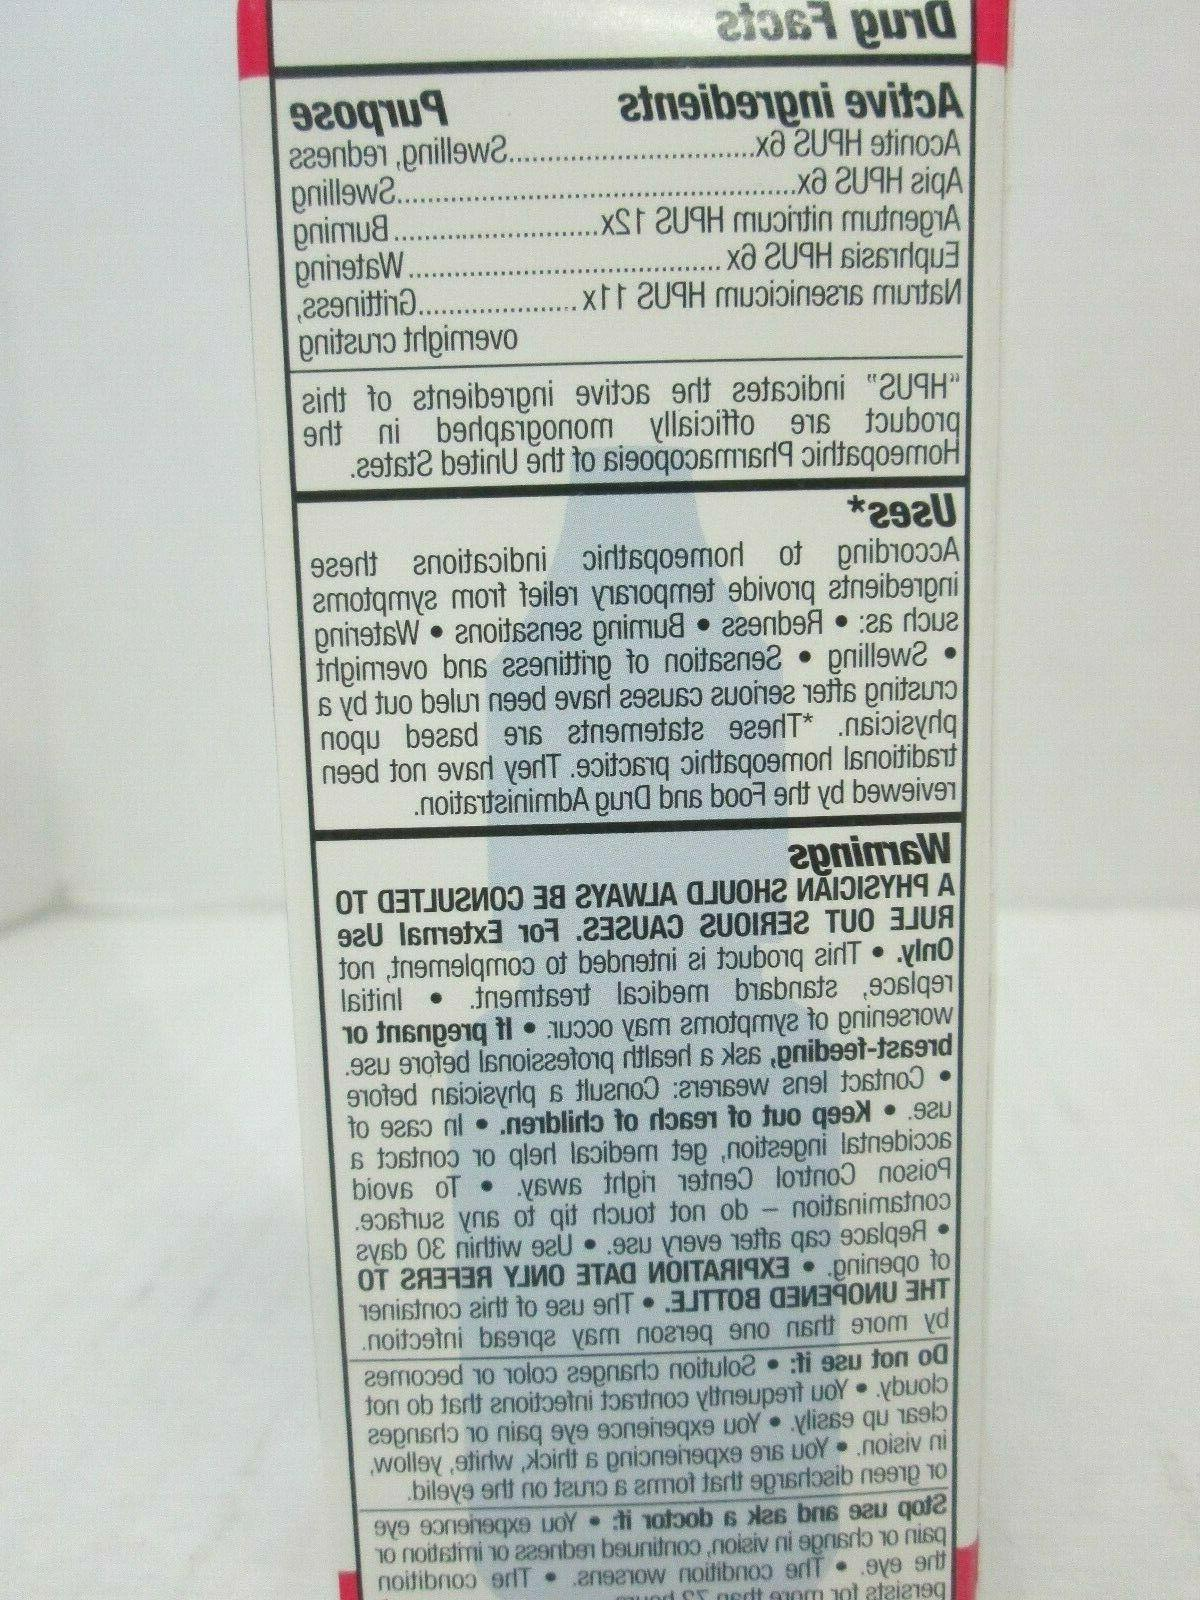 5 RELIEF HOMEOPATHIC STERILE EYE DROPS EA 6/20+ 2084